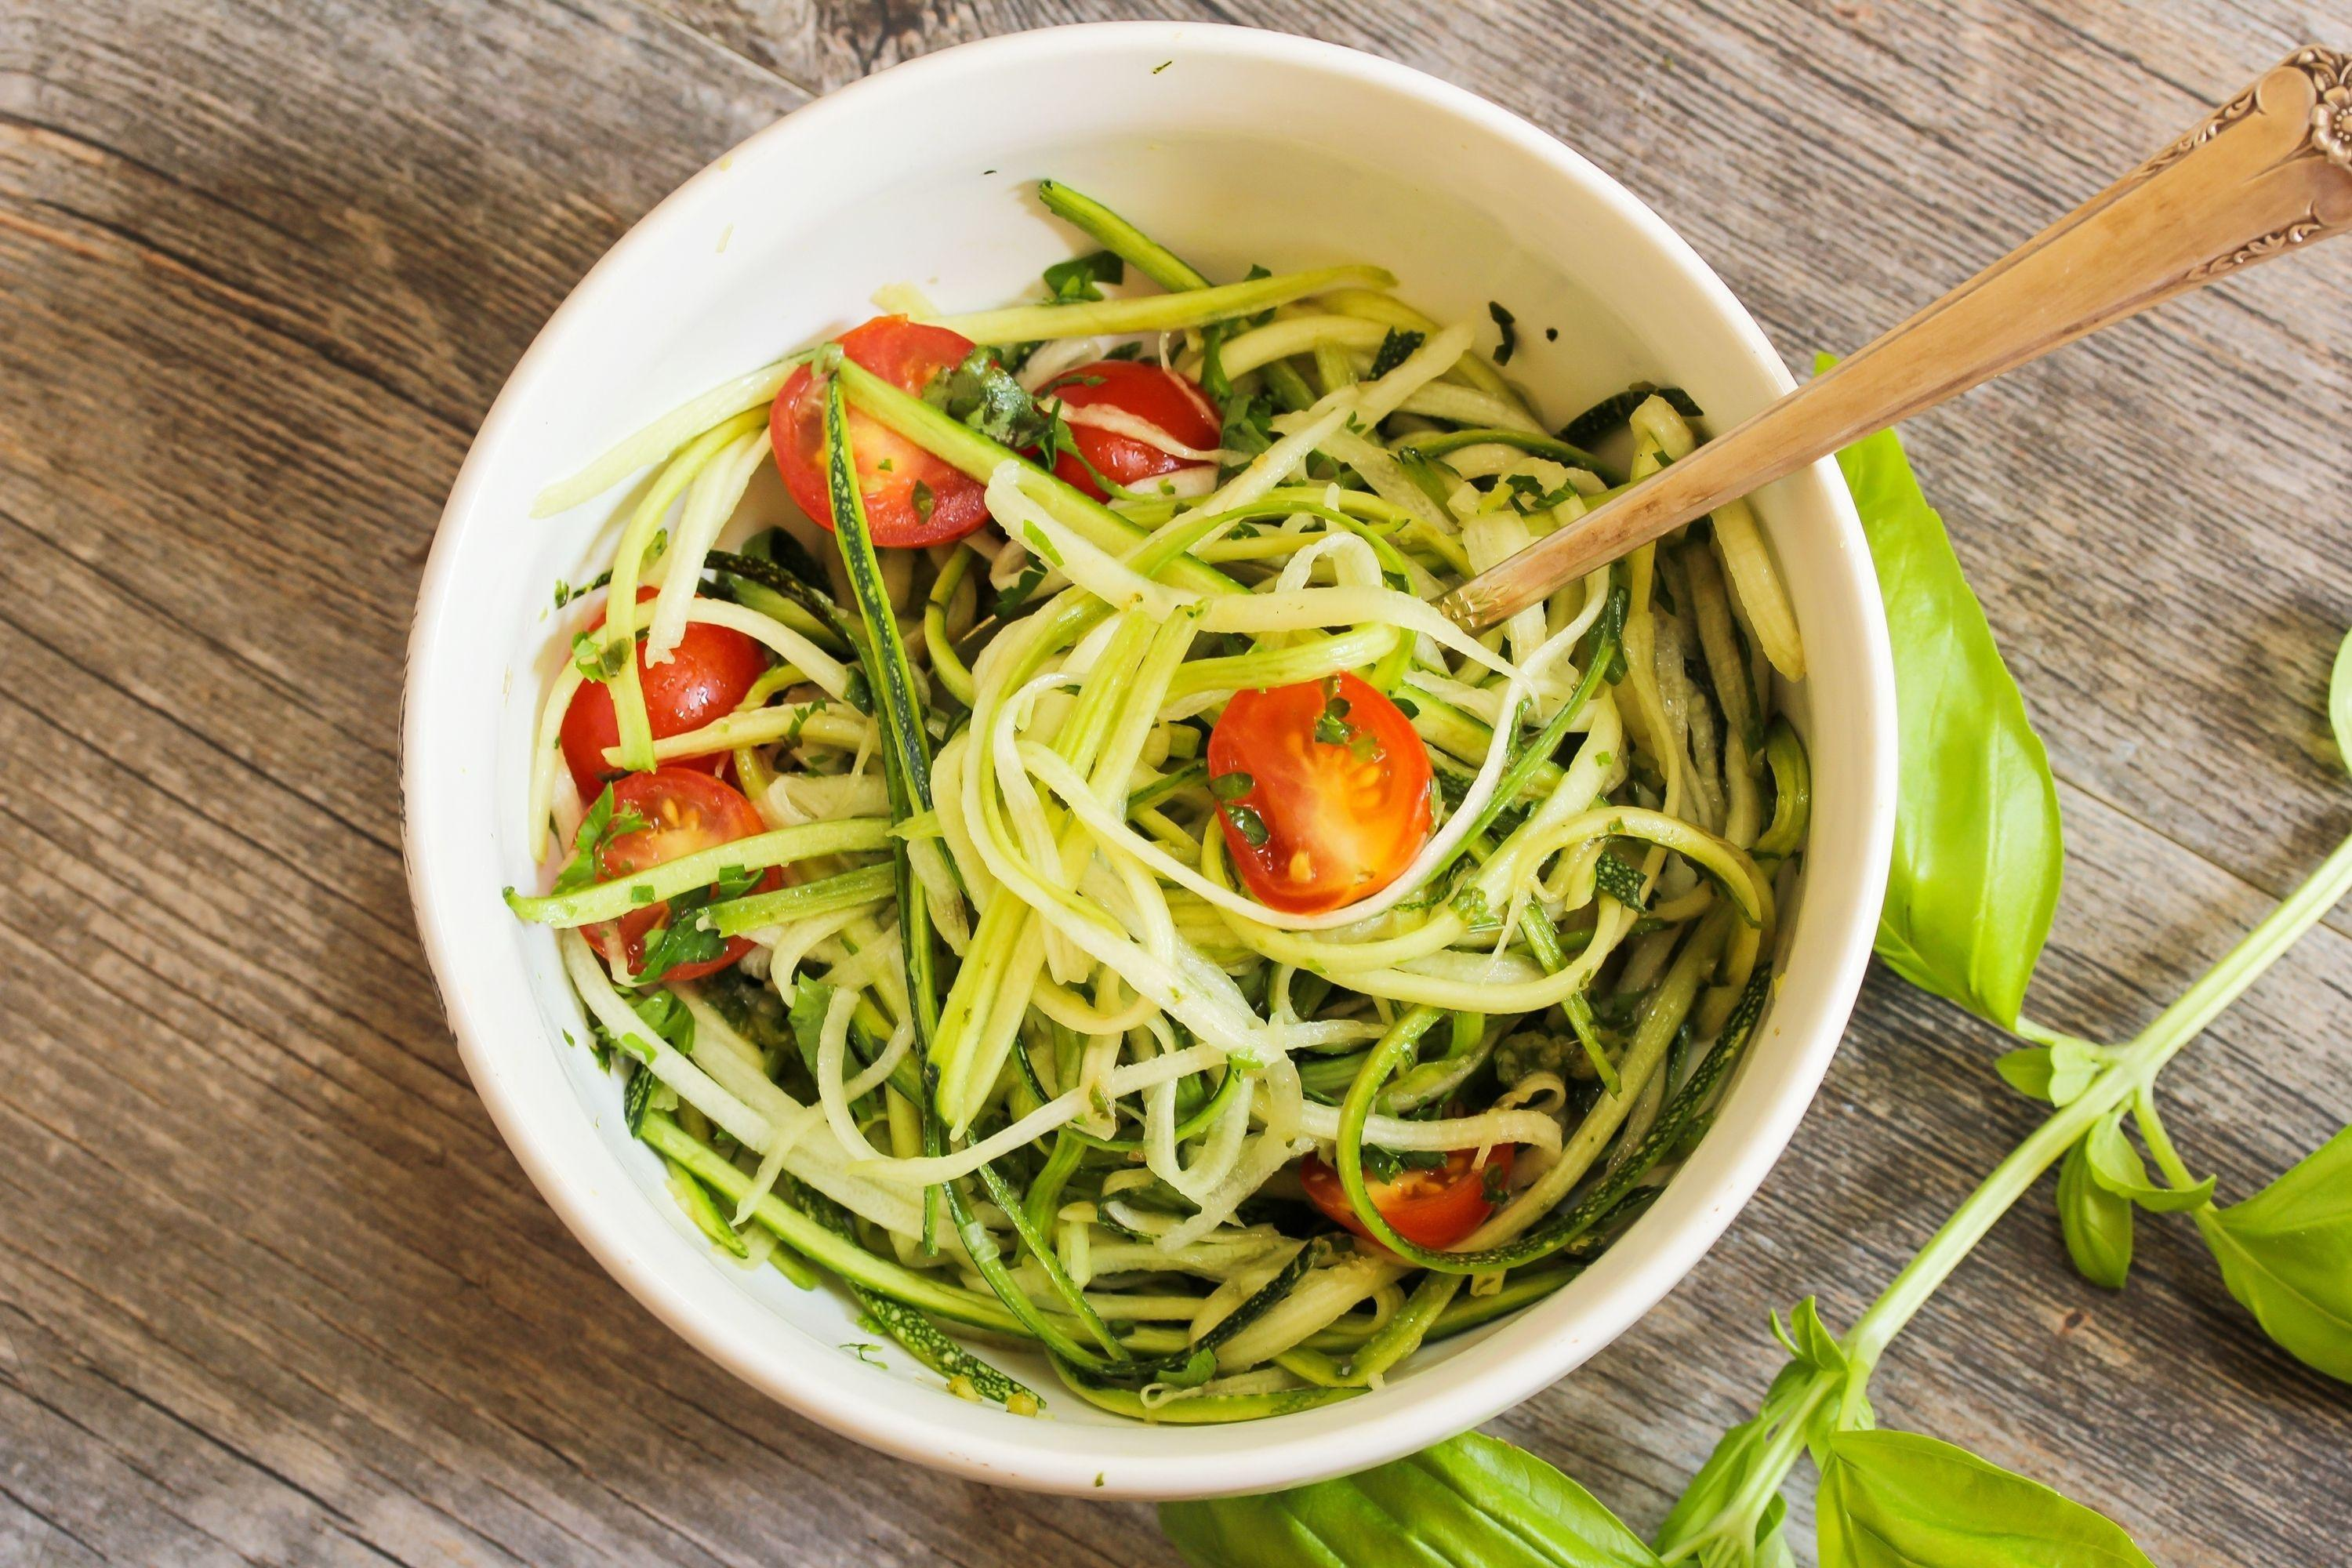 Low-carb Alternatives To Pasta